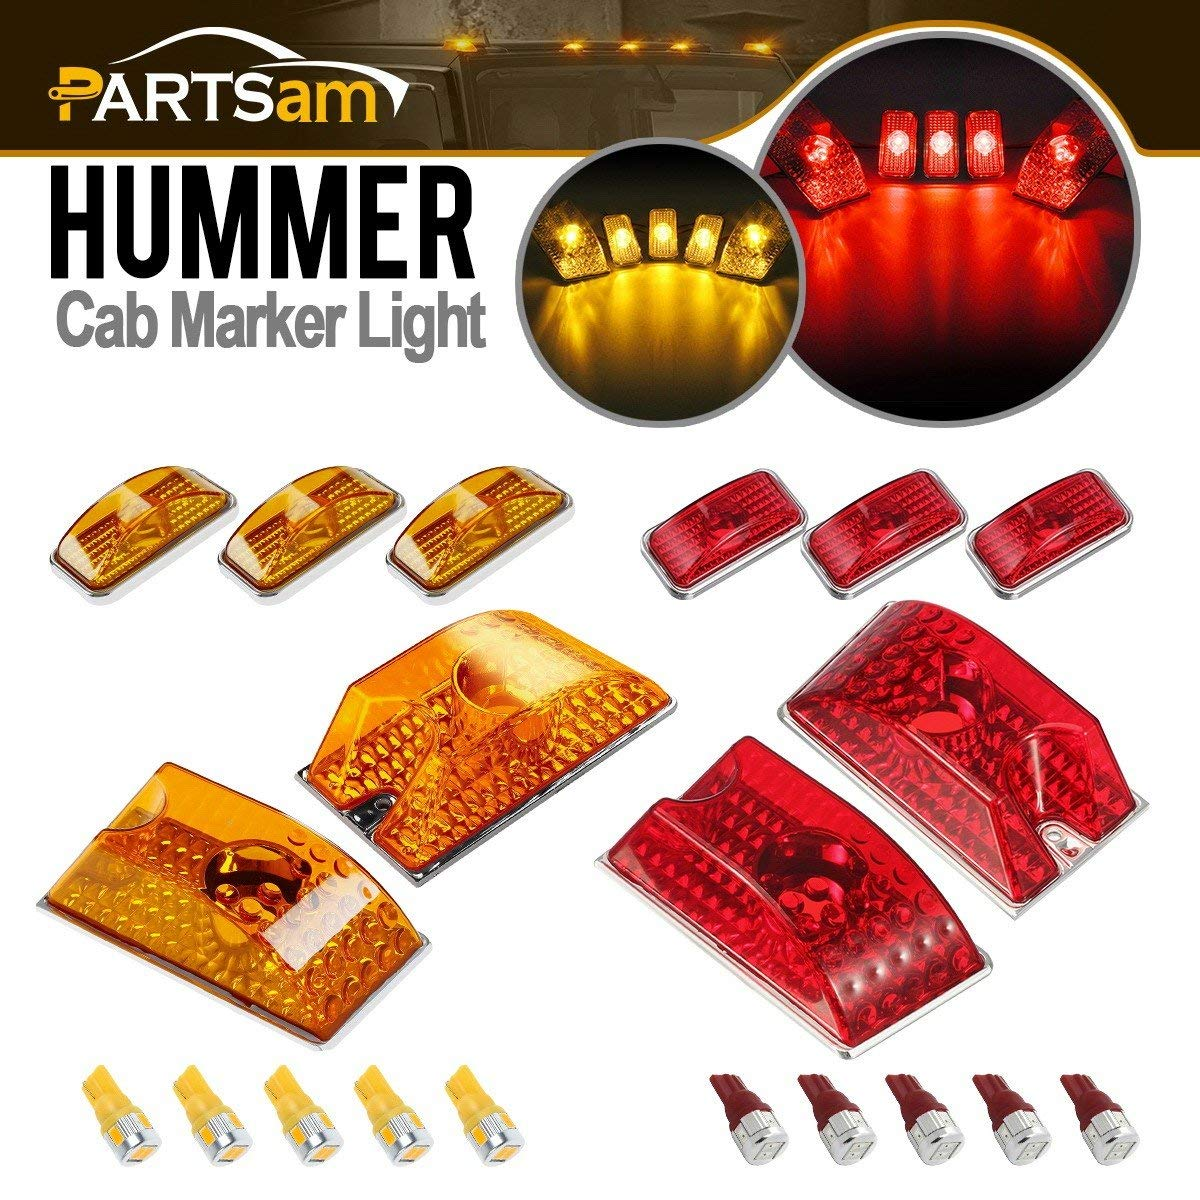 5xRed+5xAmber Partsam Whole Assembly Set Lens 264160 Cab Marker Roof Running Crystal Chrome Lights with T10 194 168 W5W 6-5730-SMD LED Bulbs Replacement for 2003-2009 Hummer H2 SUV SUT